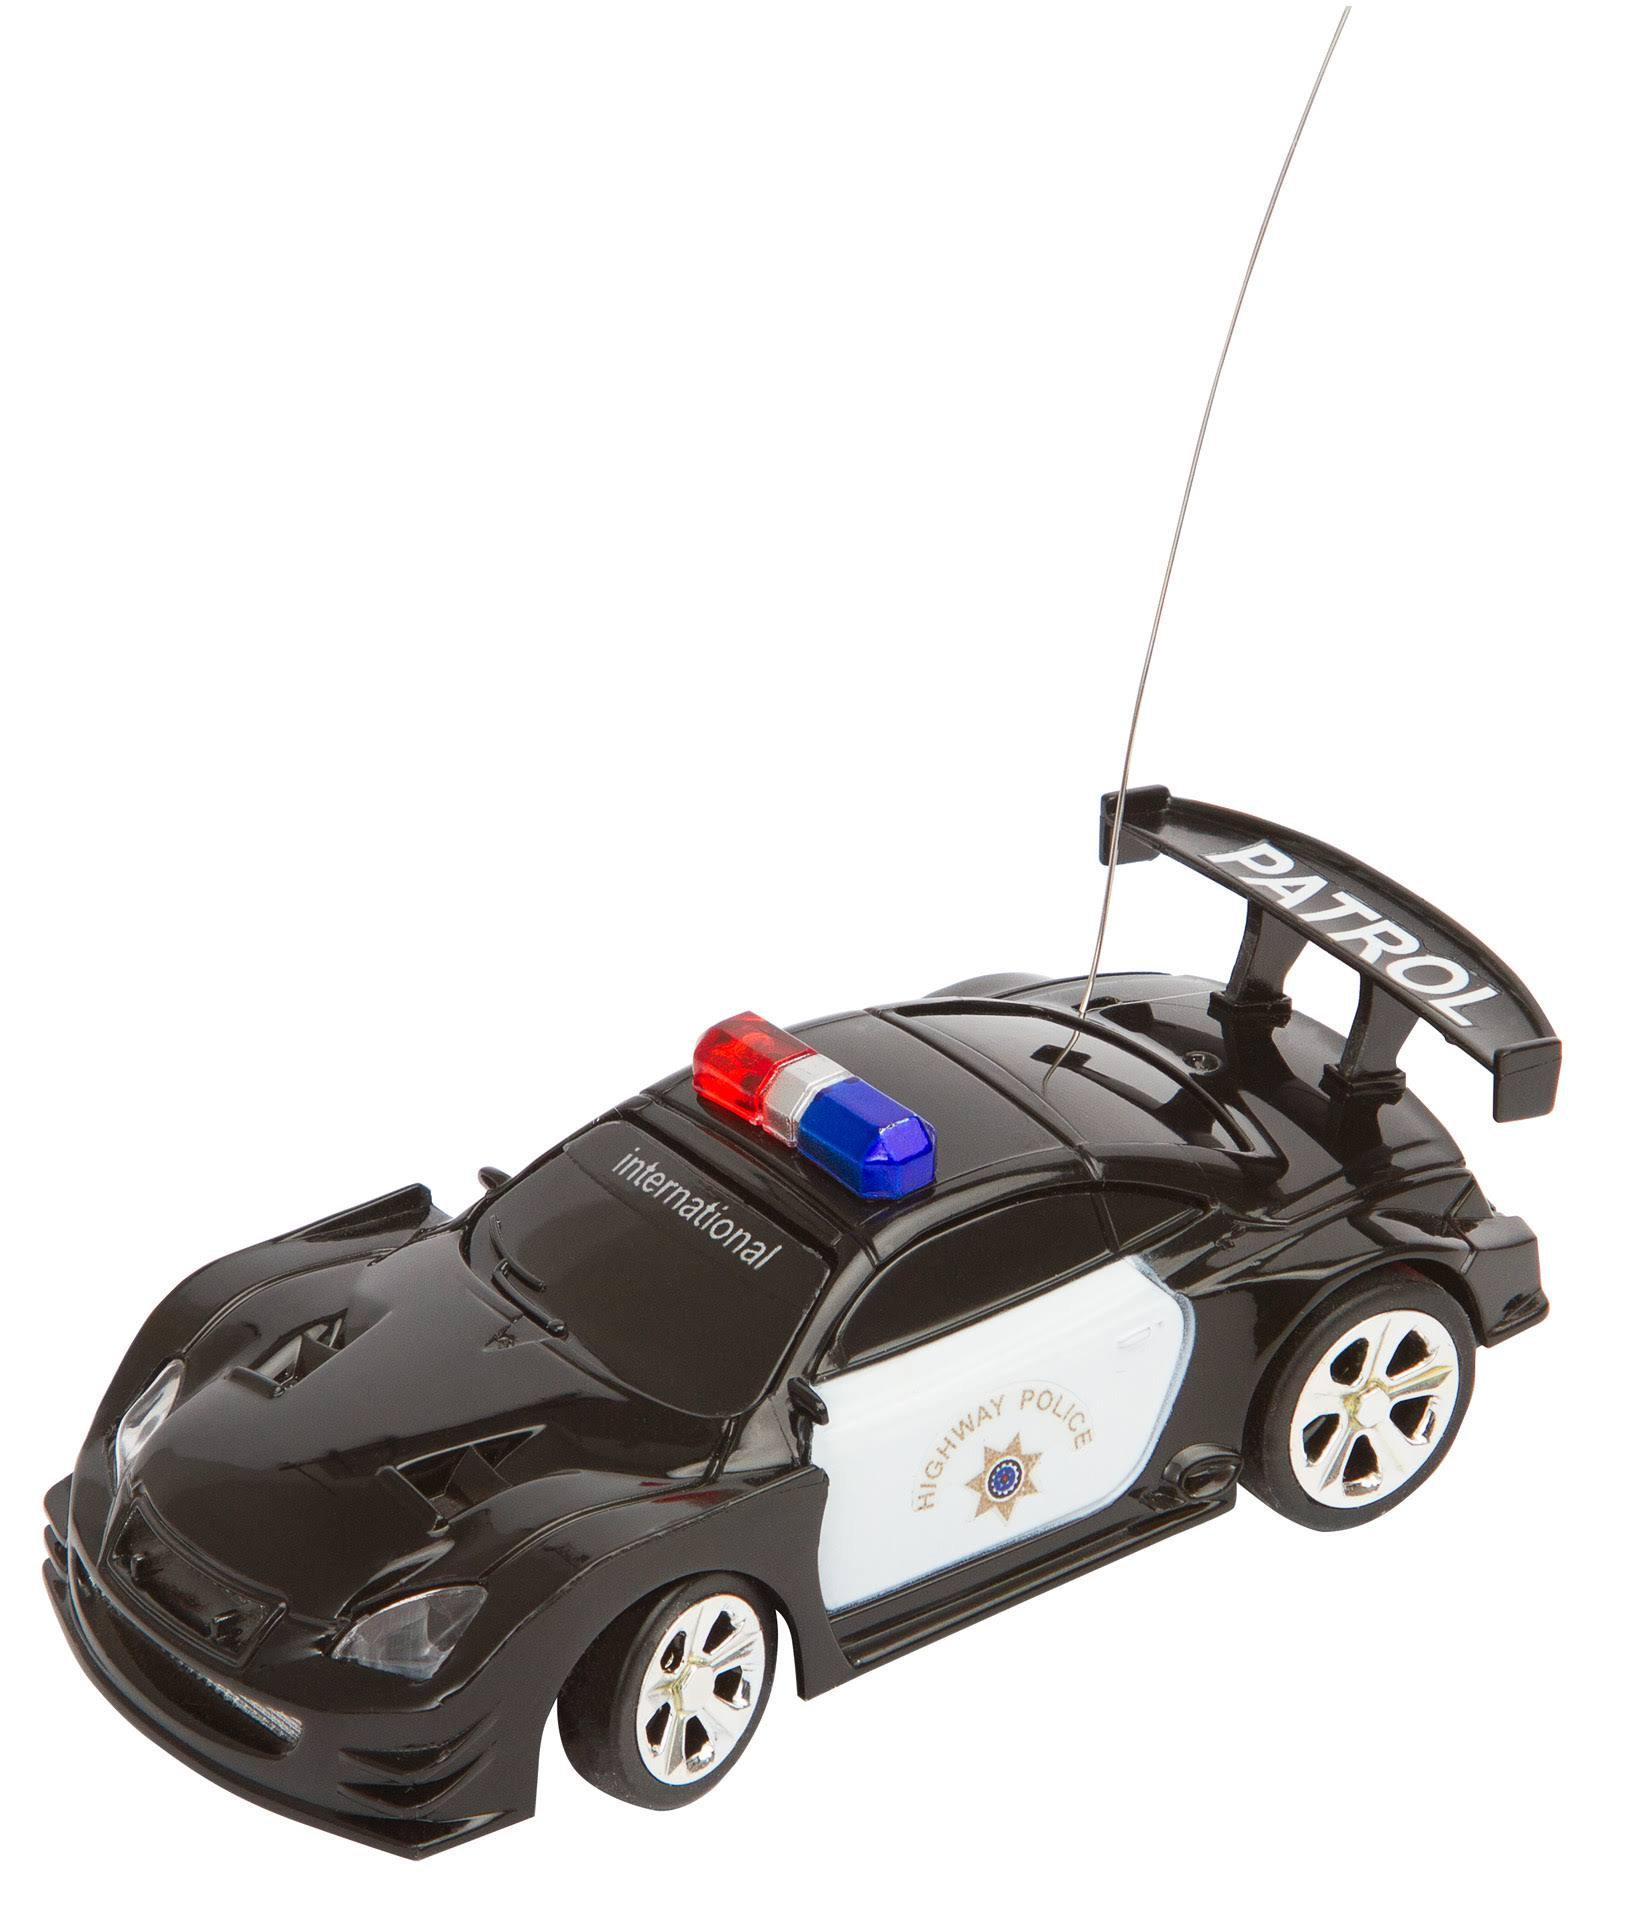 HQ Kites RC Police Mini Racer Vehicle Car - Black and White